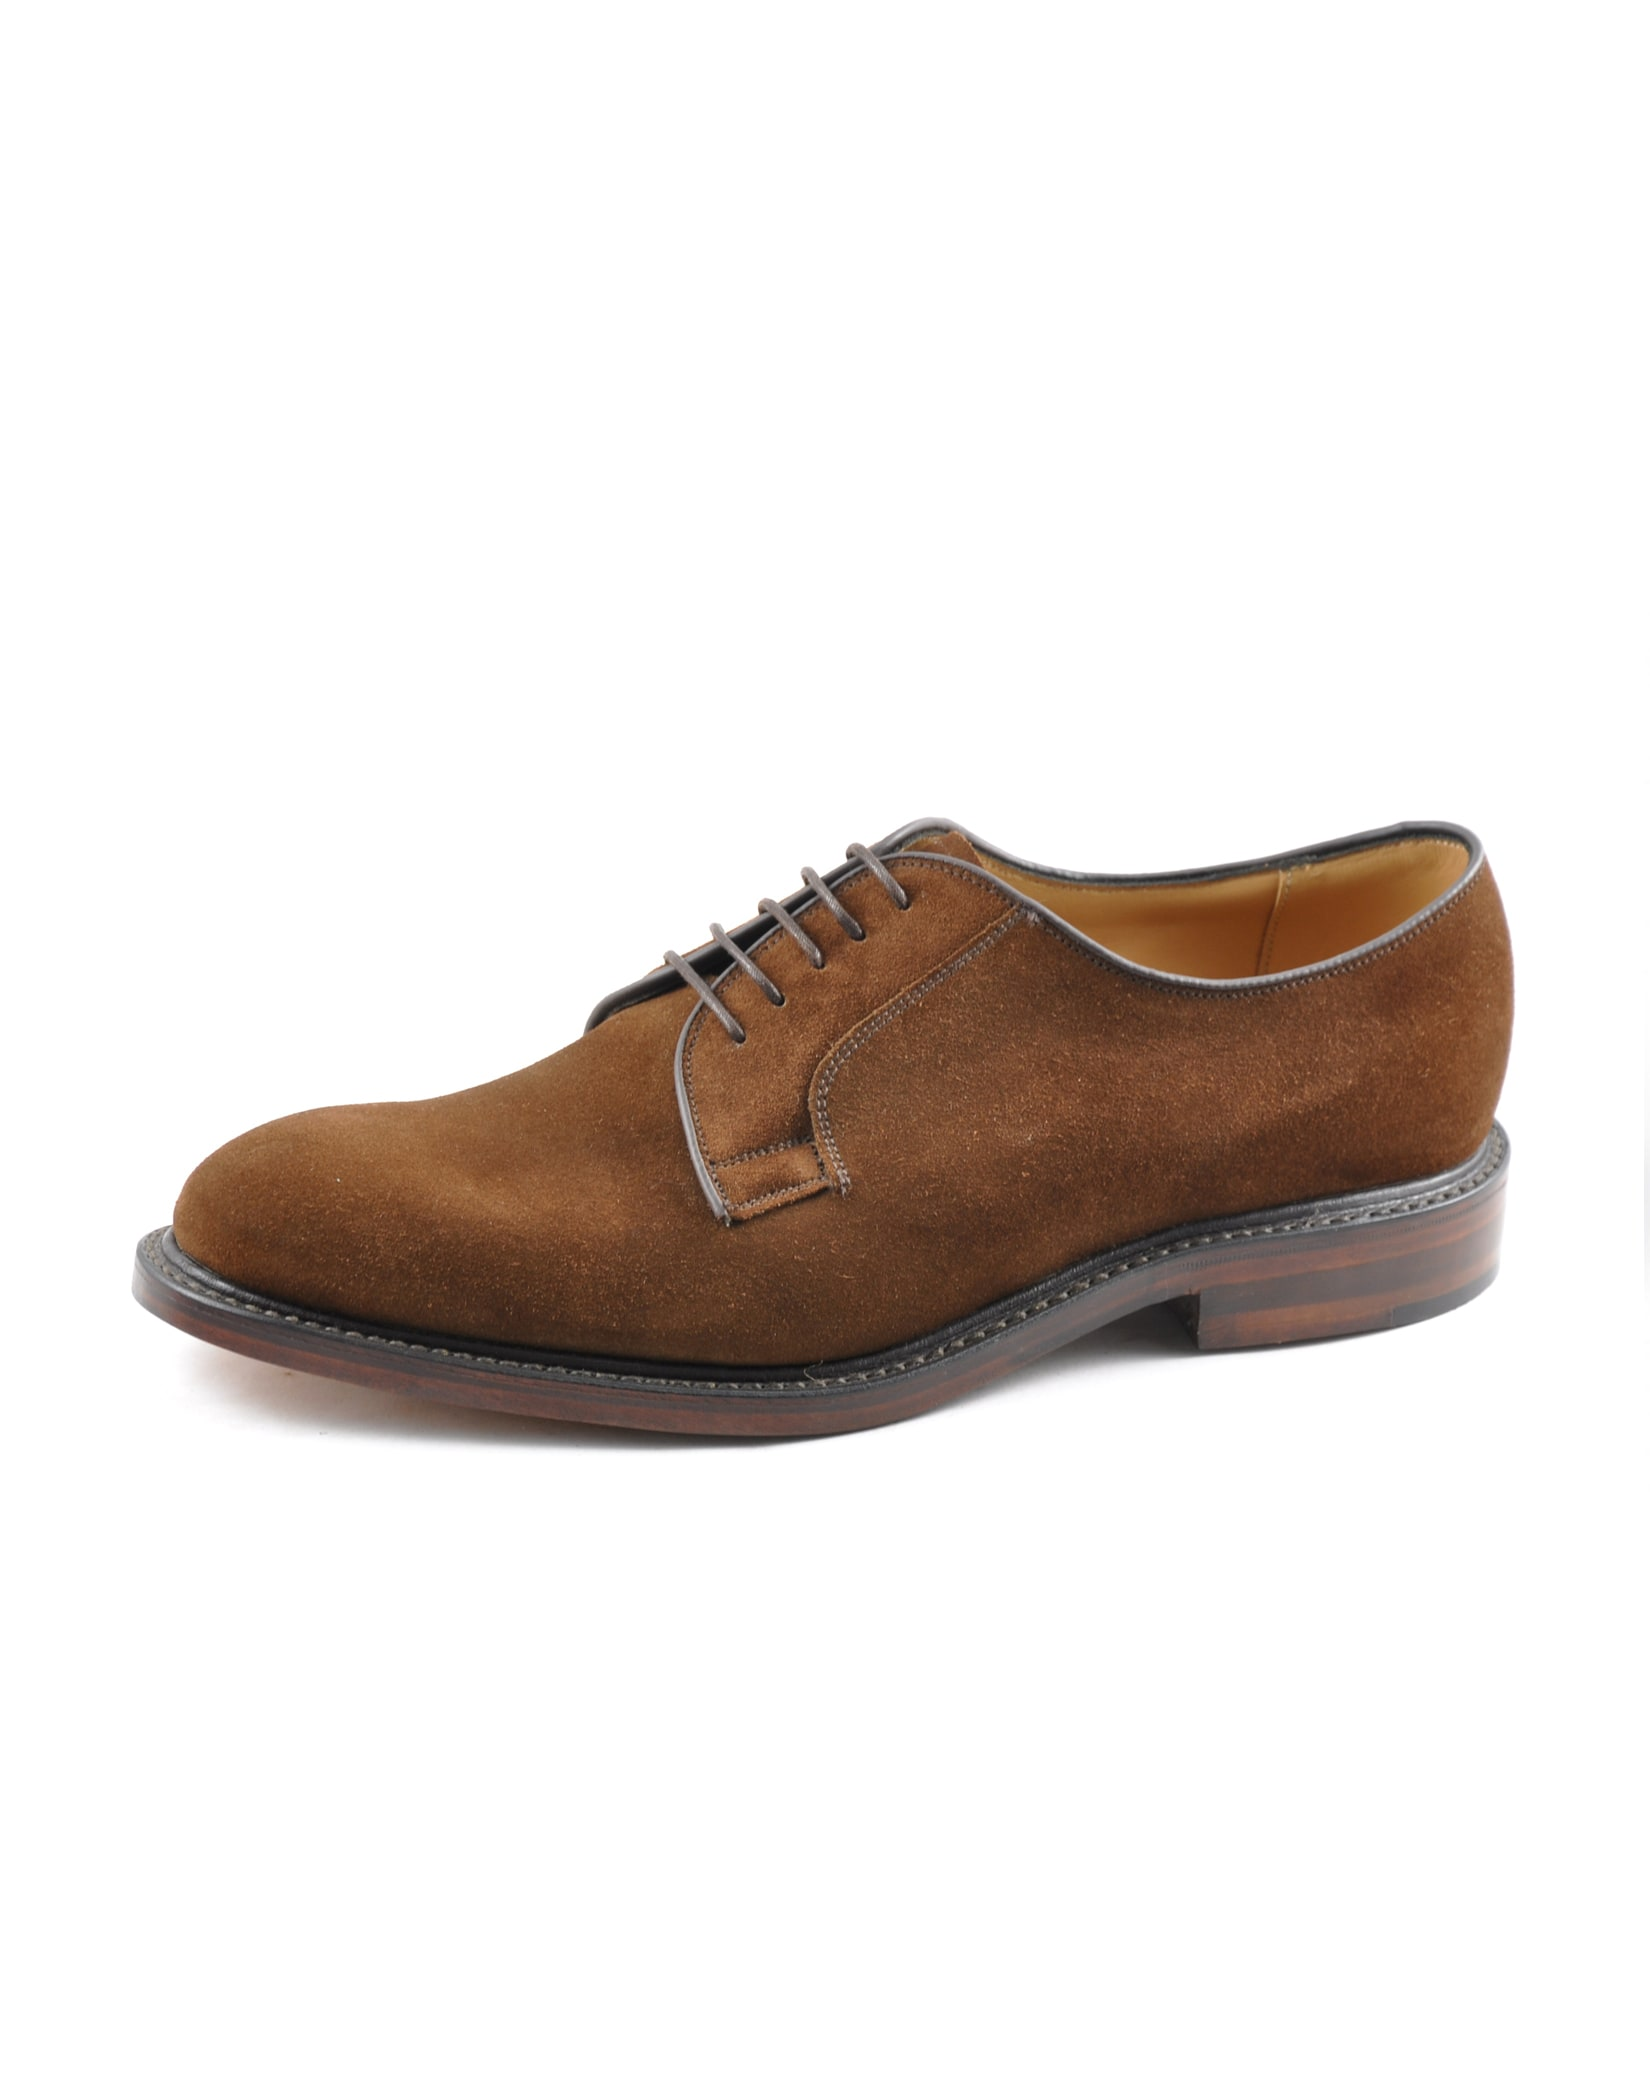 Perth Shoes Men 39s Footwear Classic Shoes Perth Shoe By Joseph Turner